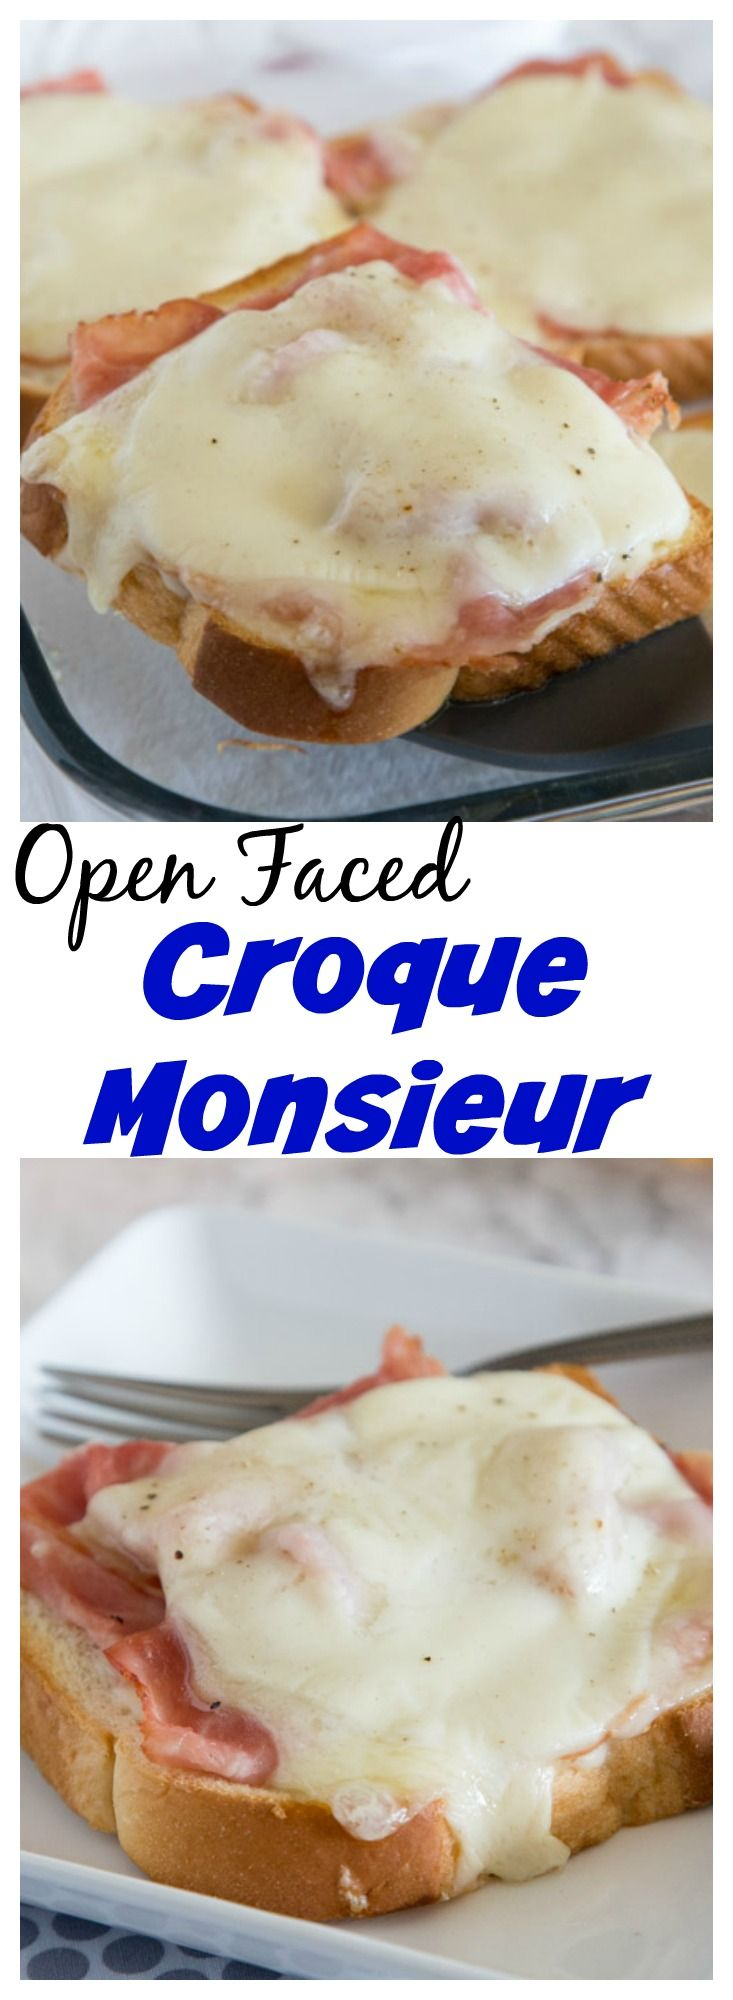 Open Faced Croque Monsieur – a traditional croque monsieur sandwich, with sliced ham, Gruyere cheese, mustard and a creamy sauce served open face on soft and tender old fashioned butter bread.